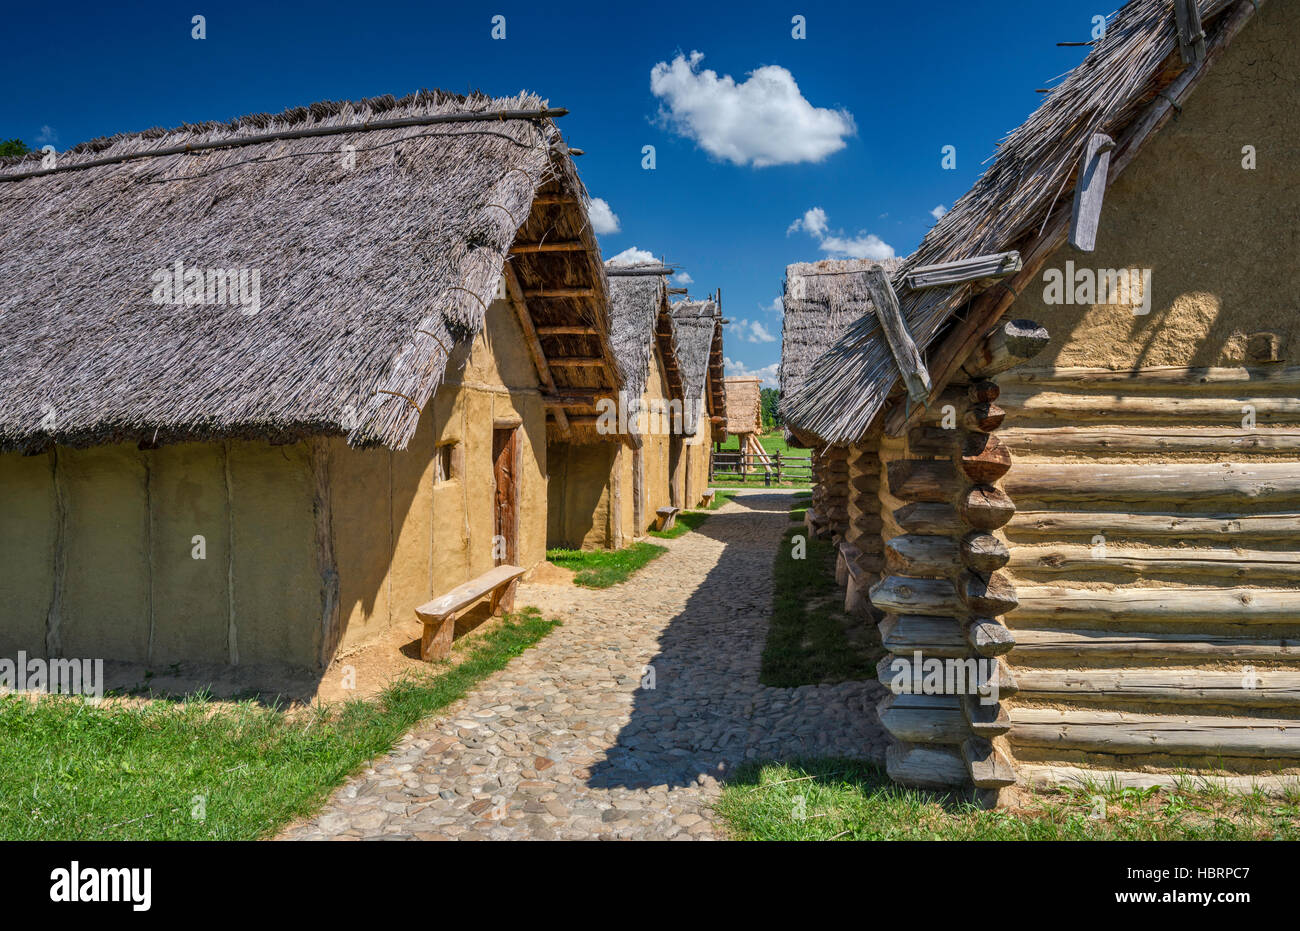 Otomani culture cottages, Bronze Age, 17th-14th century BC, Carpathian Troy Archaeological Open-Air Museum in Trzcinica, - Stock Image